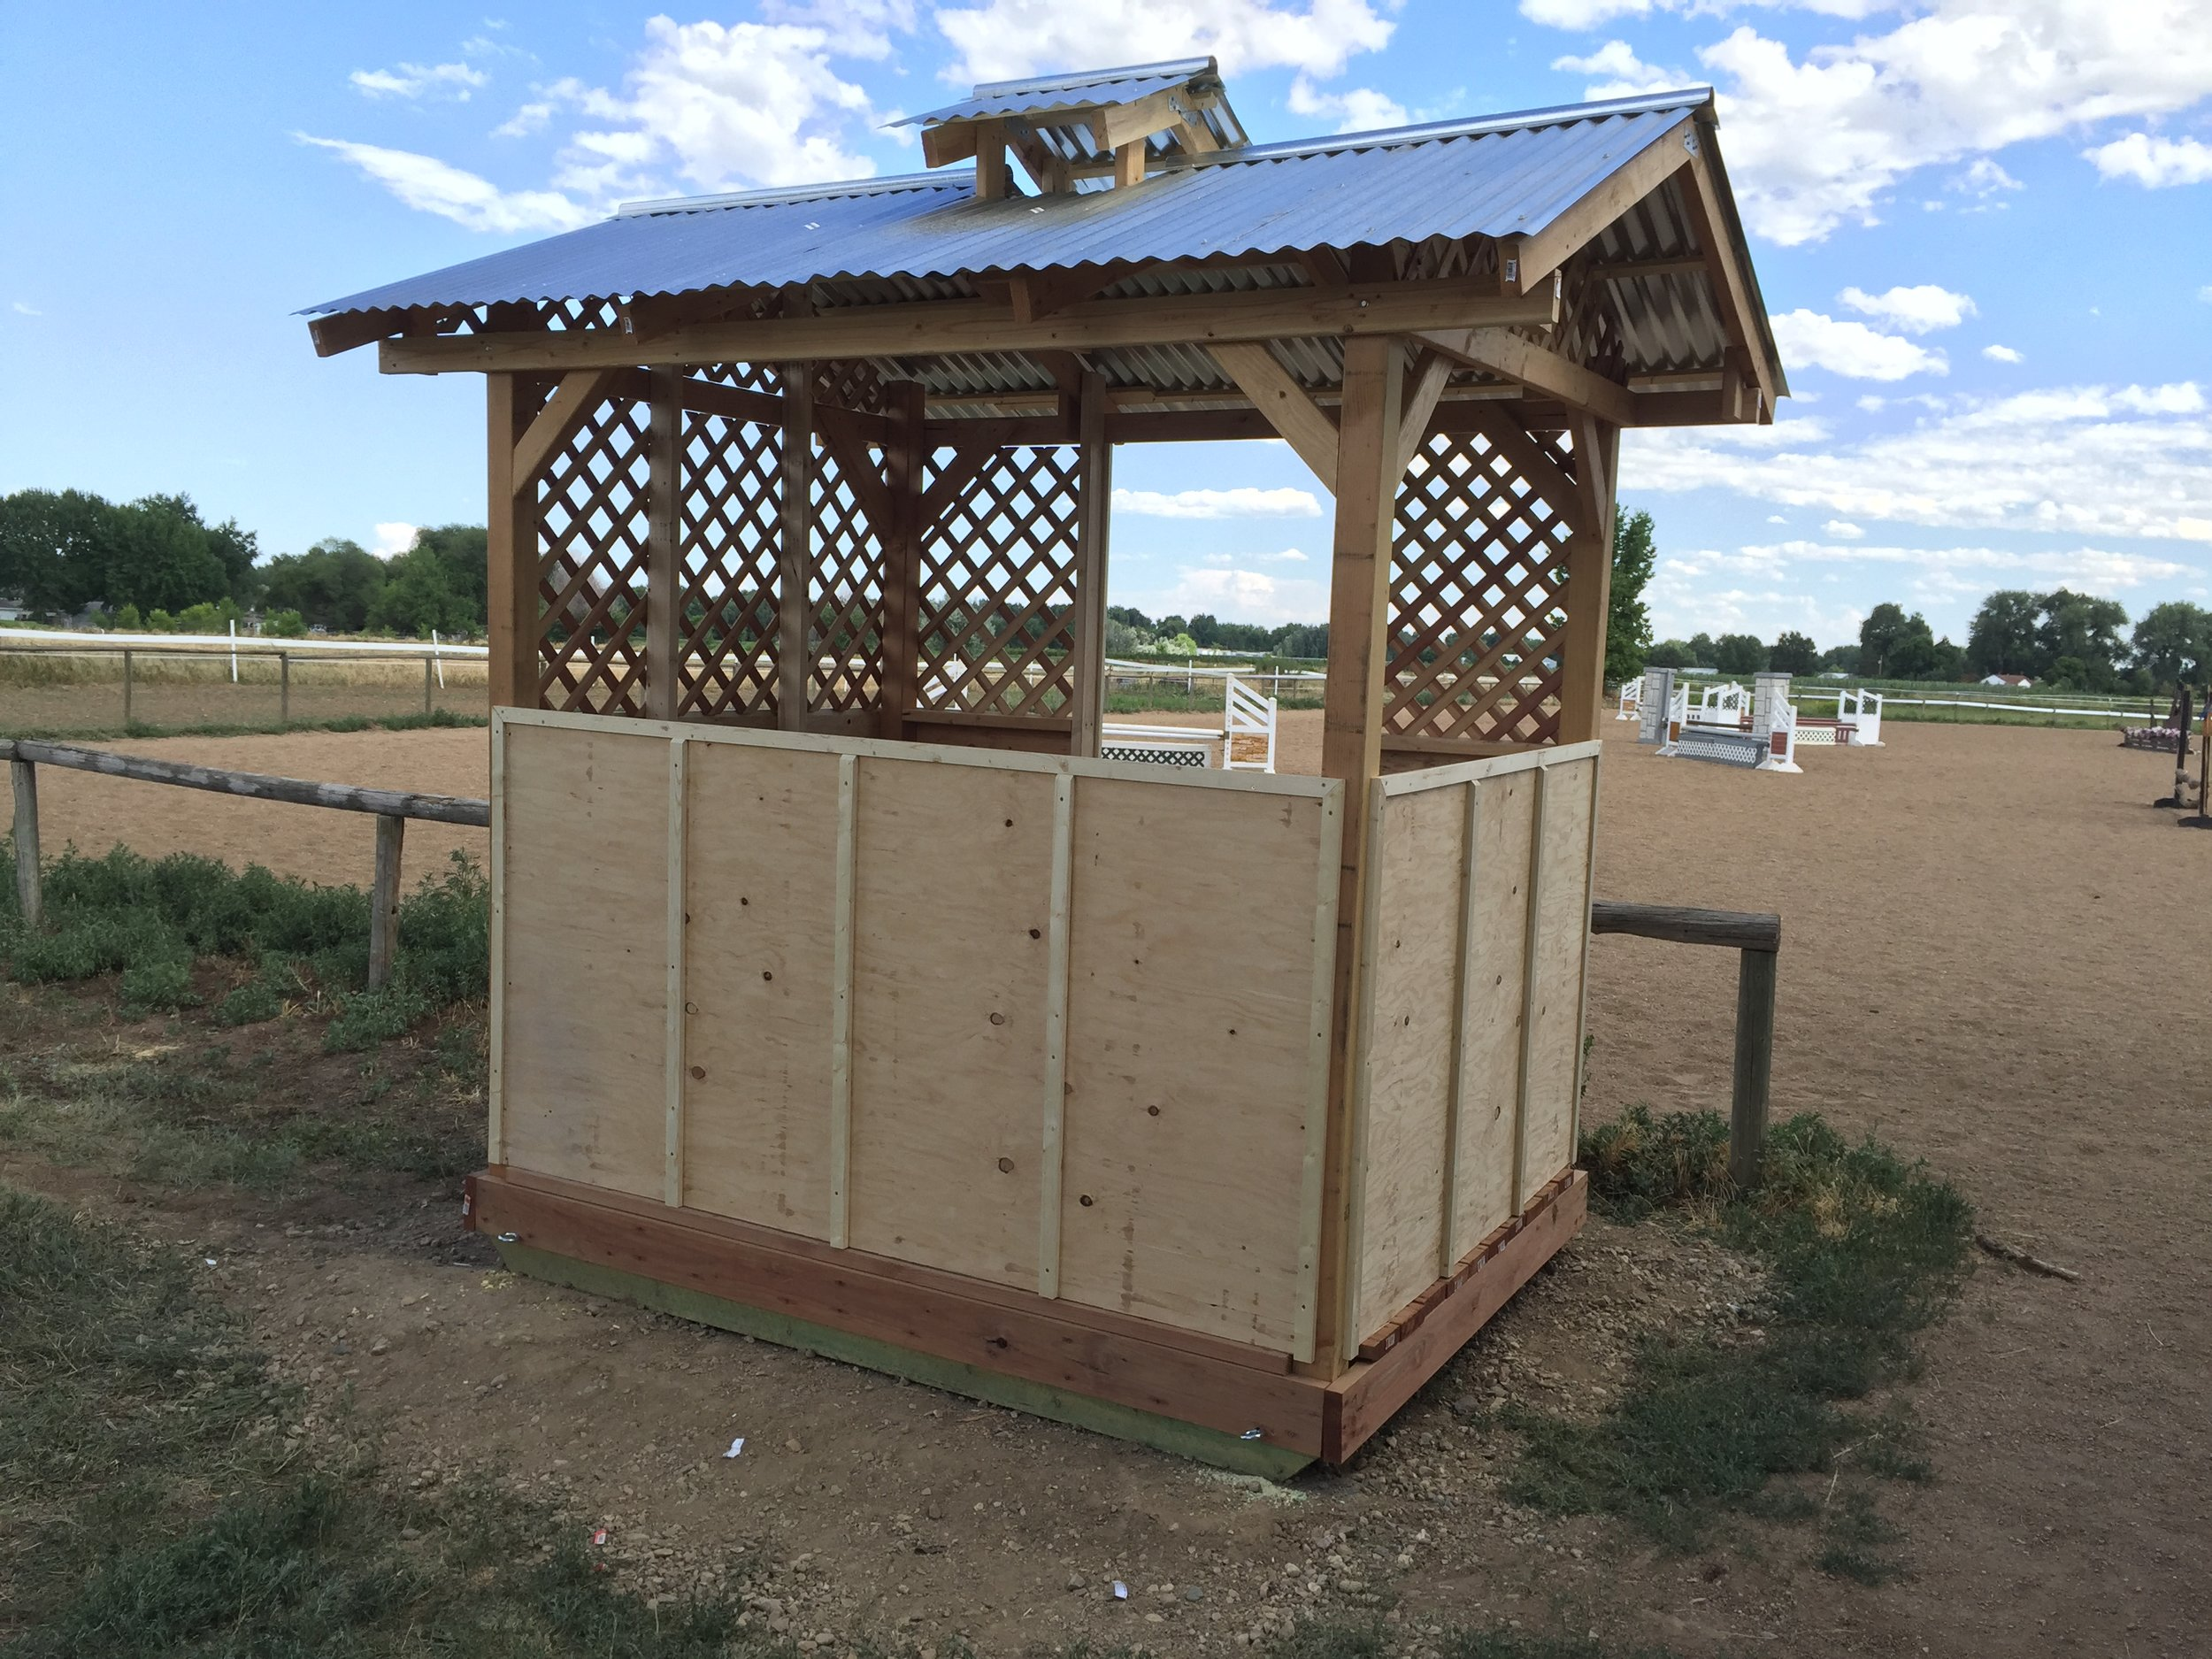 Gazebo built with reflective tin roof and ventilation for hot summer days